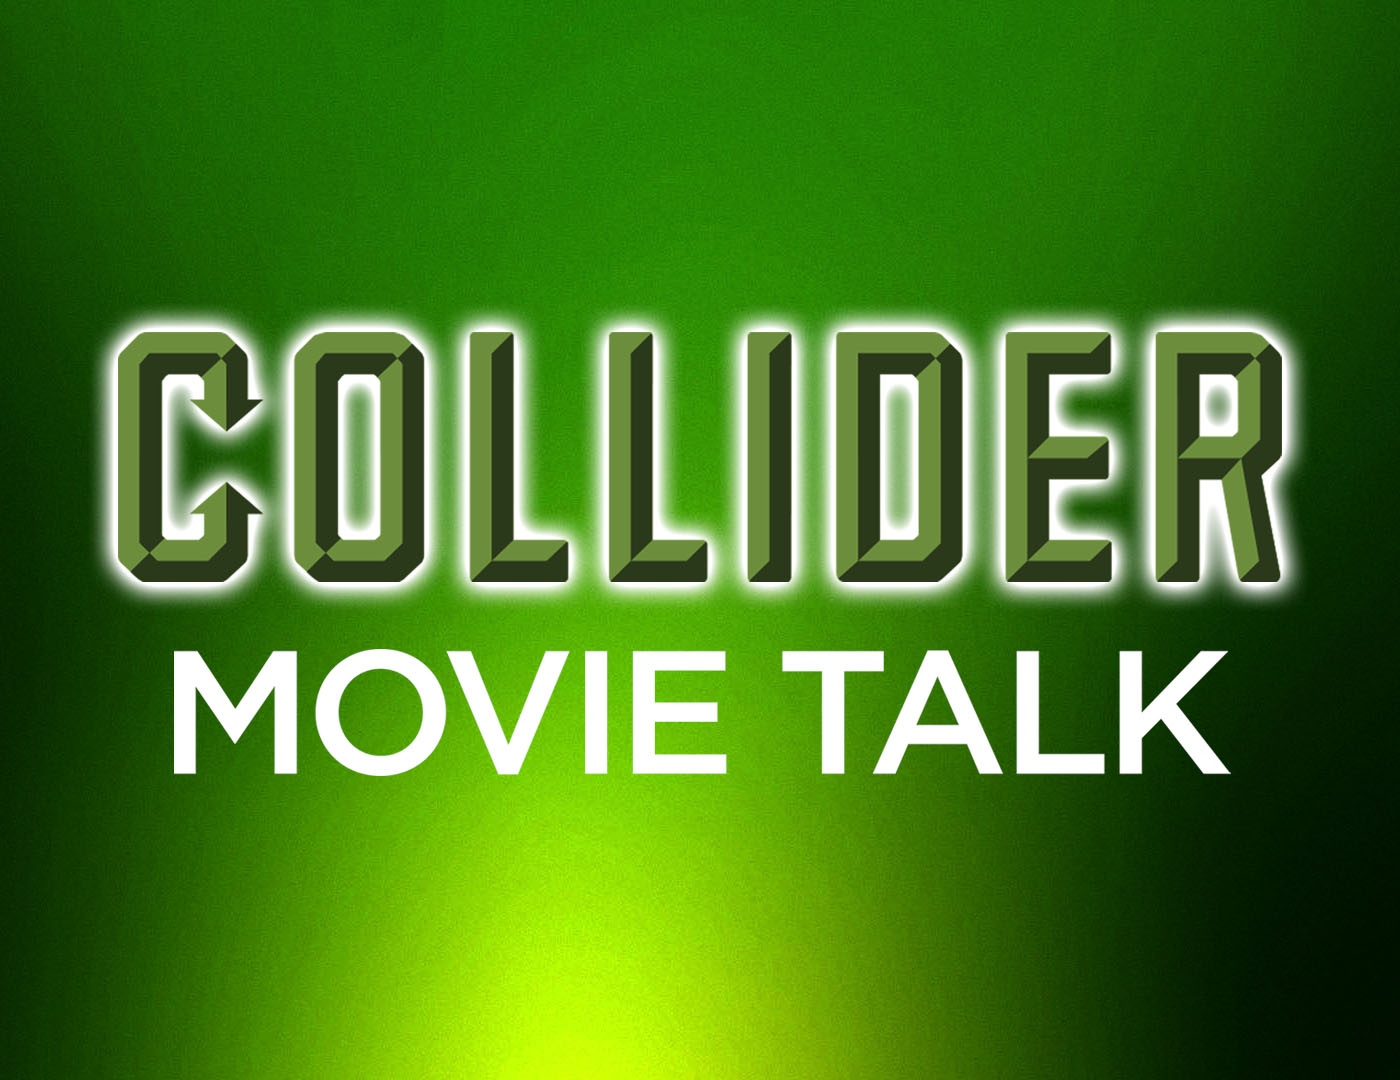 Collider Movie Talk - Guardians of the Galaxy 2 Begins Filming